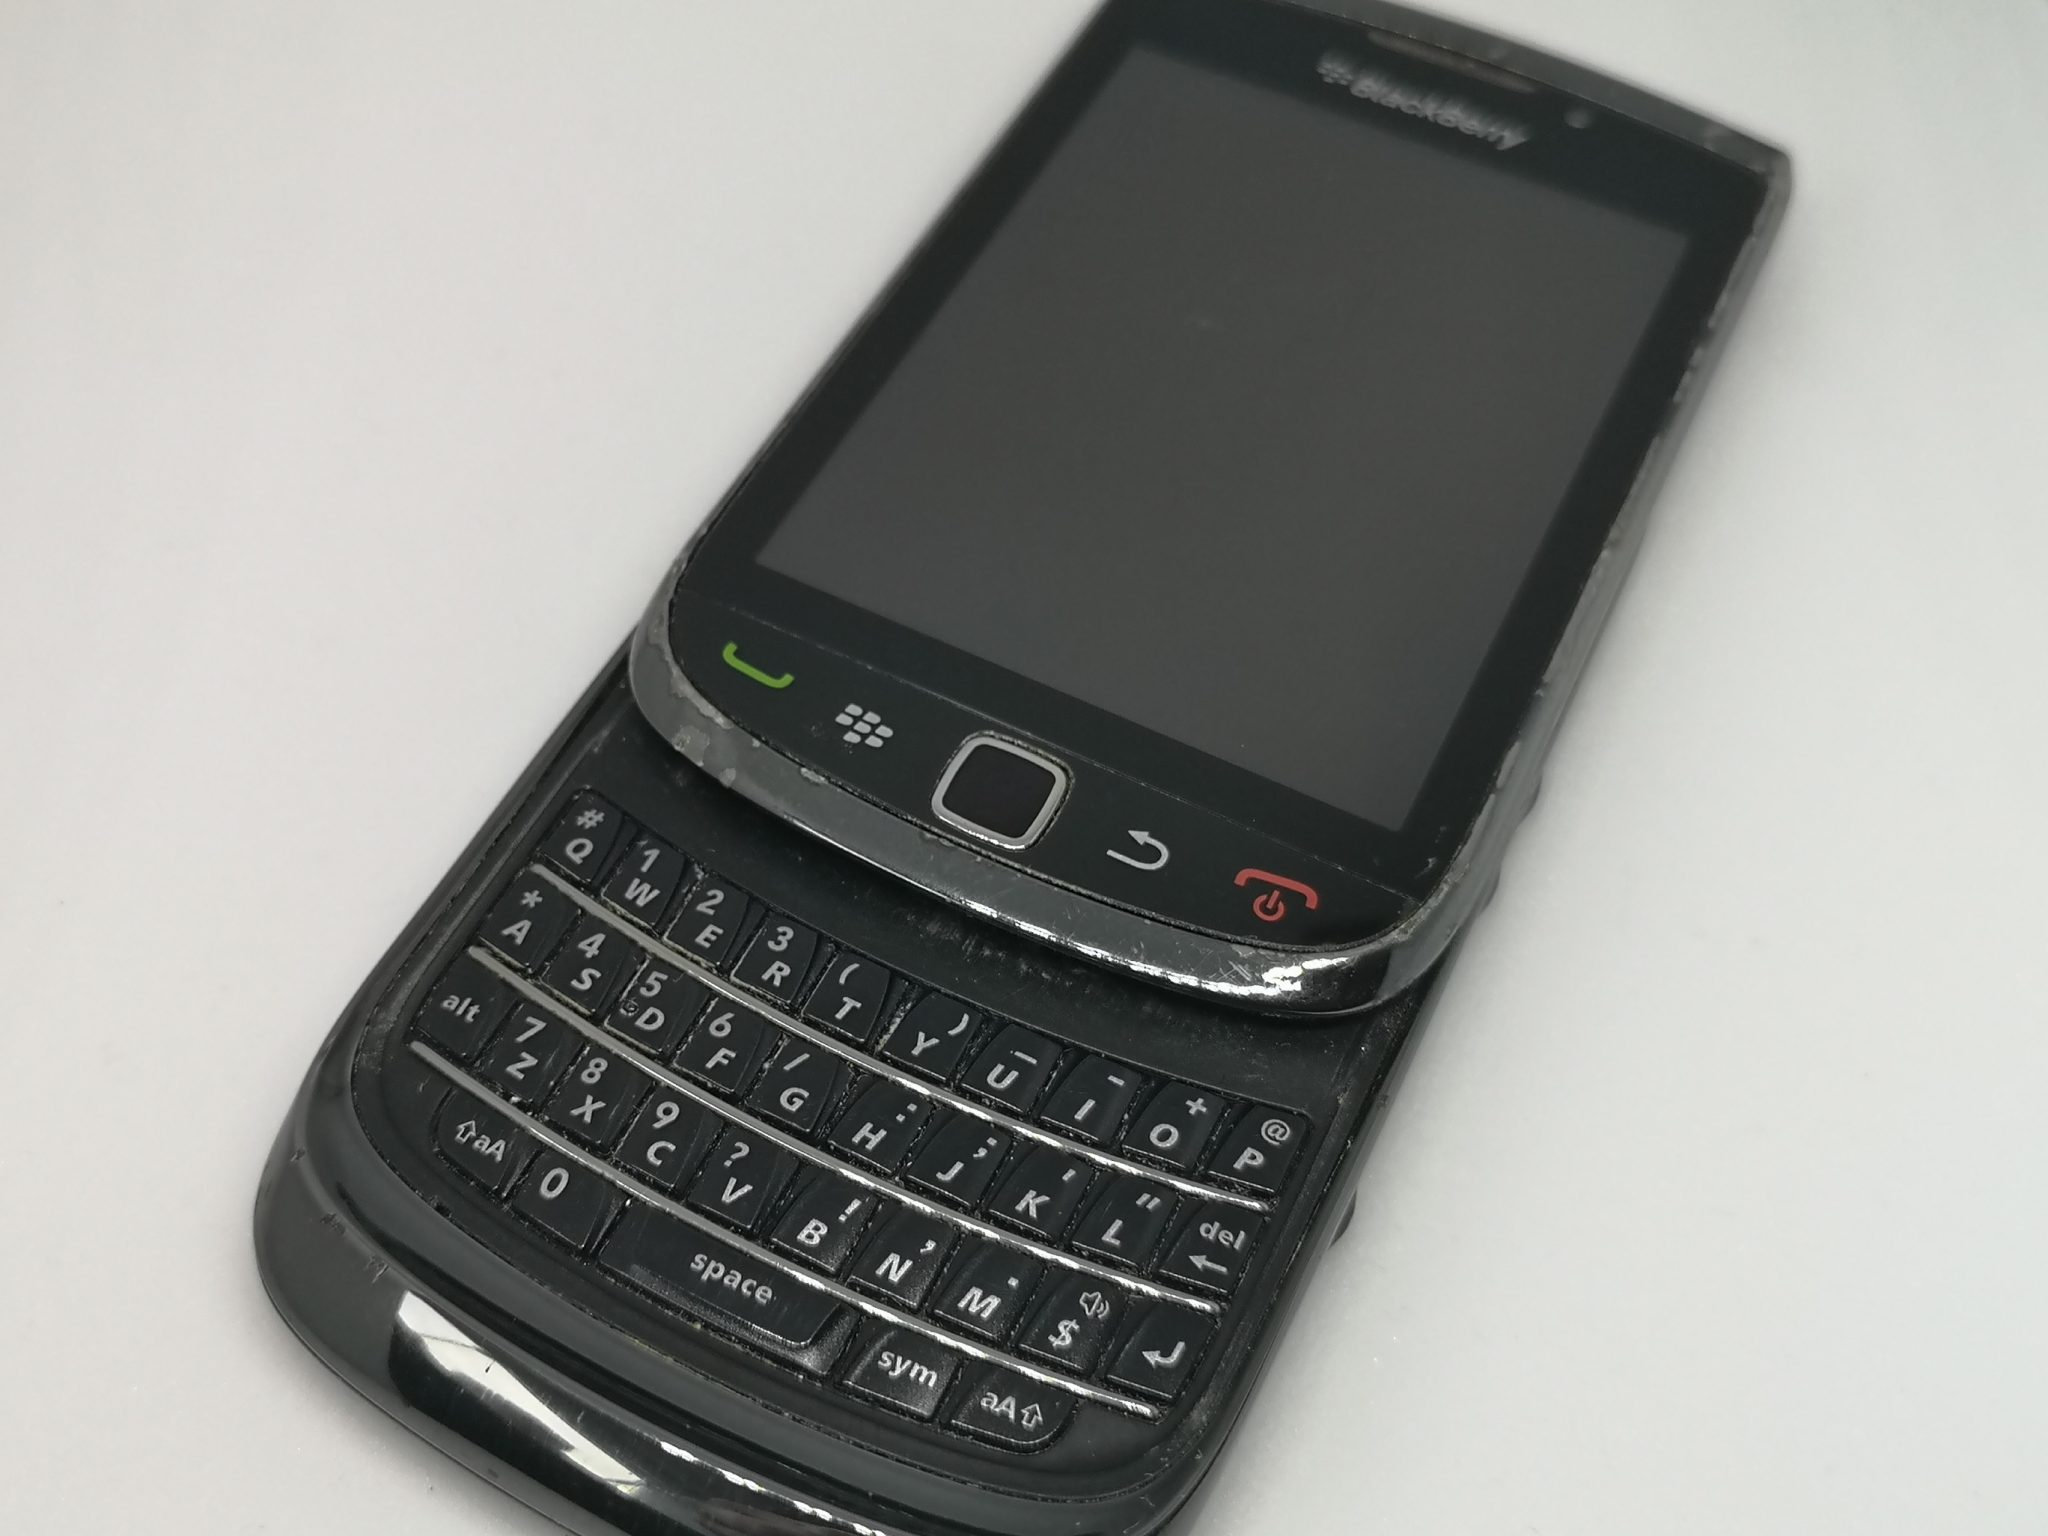 Blackberry Torch 9800 Vintage Mobile Phone Review - Keypad and Touch Combine